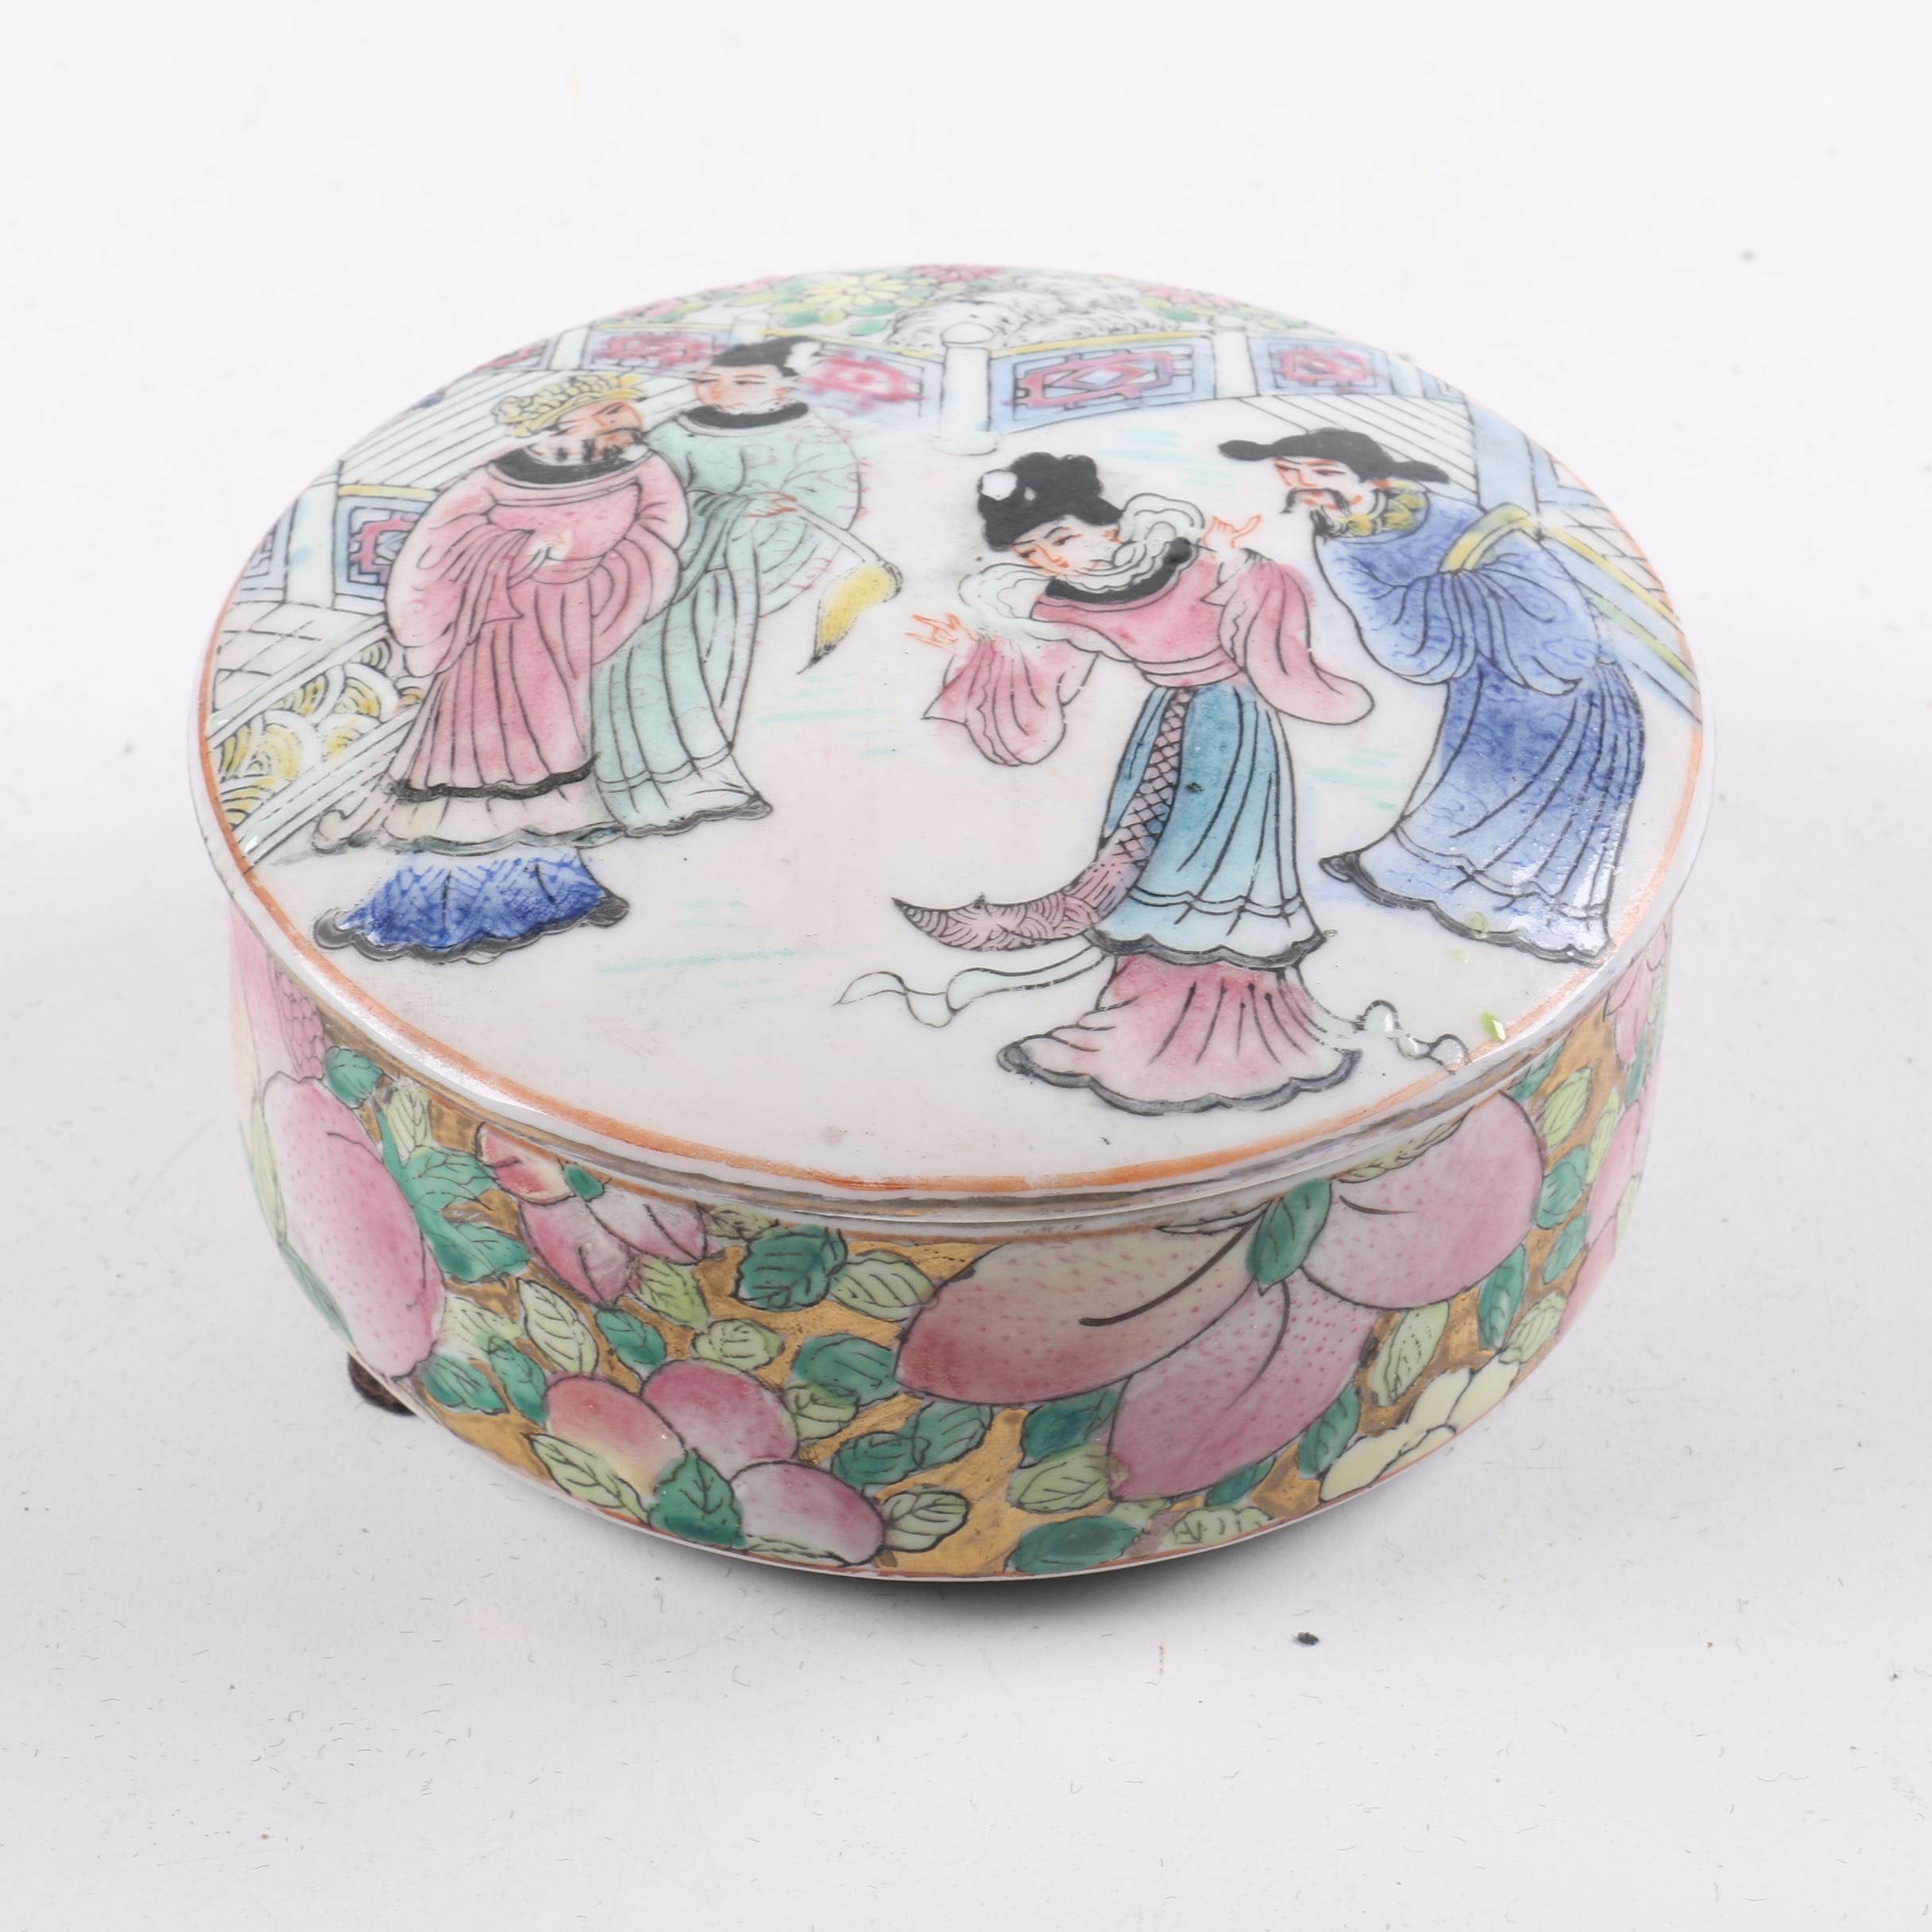 Chinese Porcelain Snuff Bottle and Trinket Box